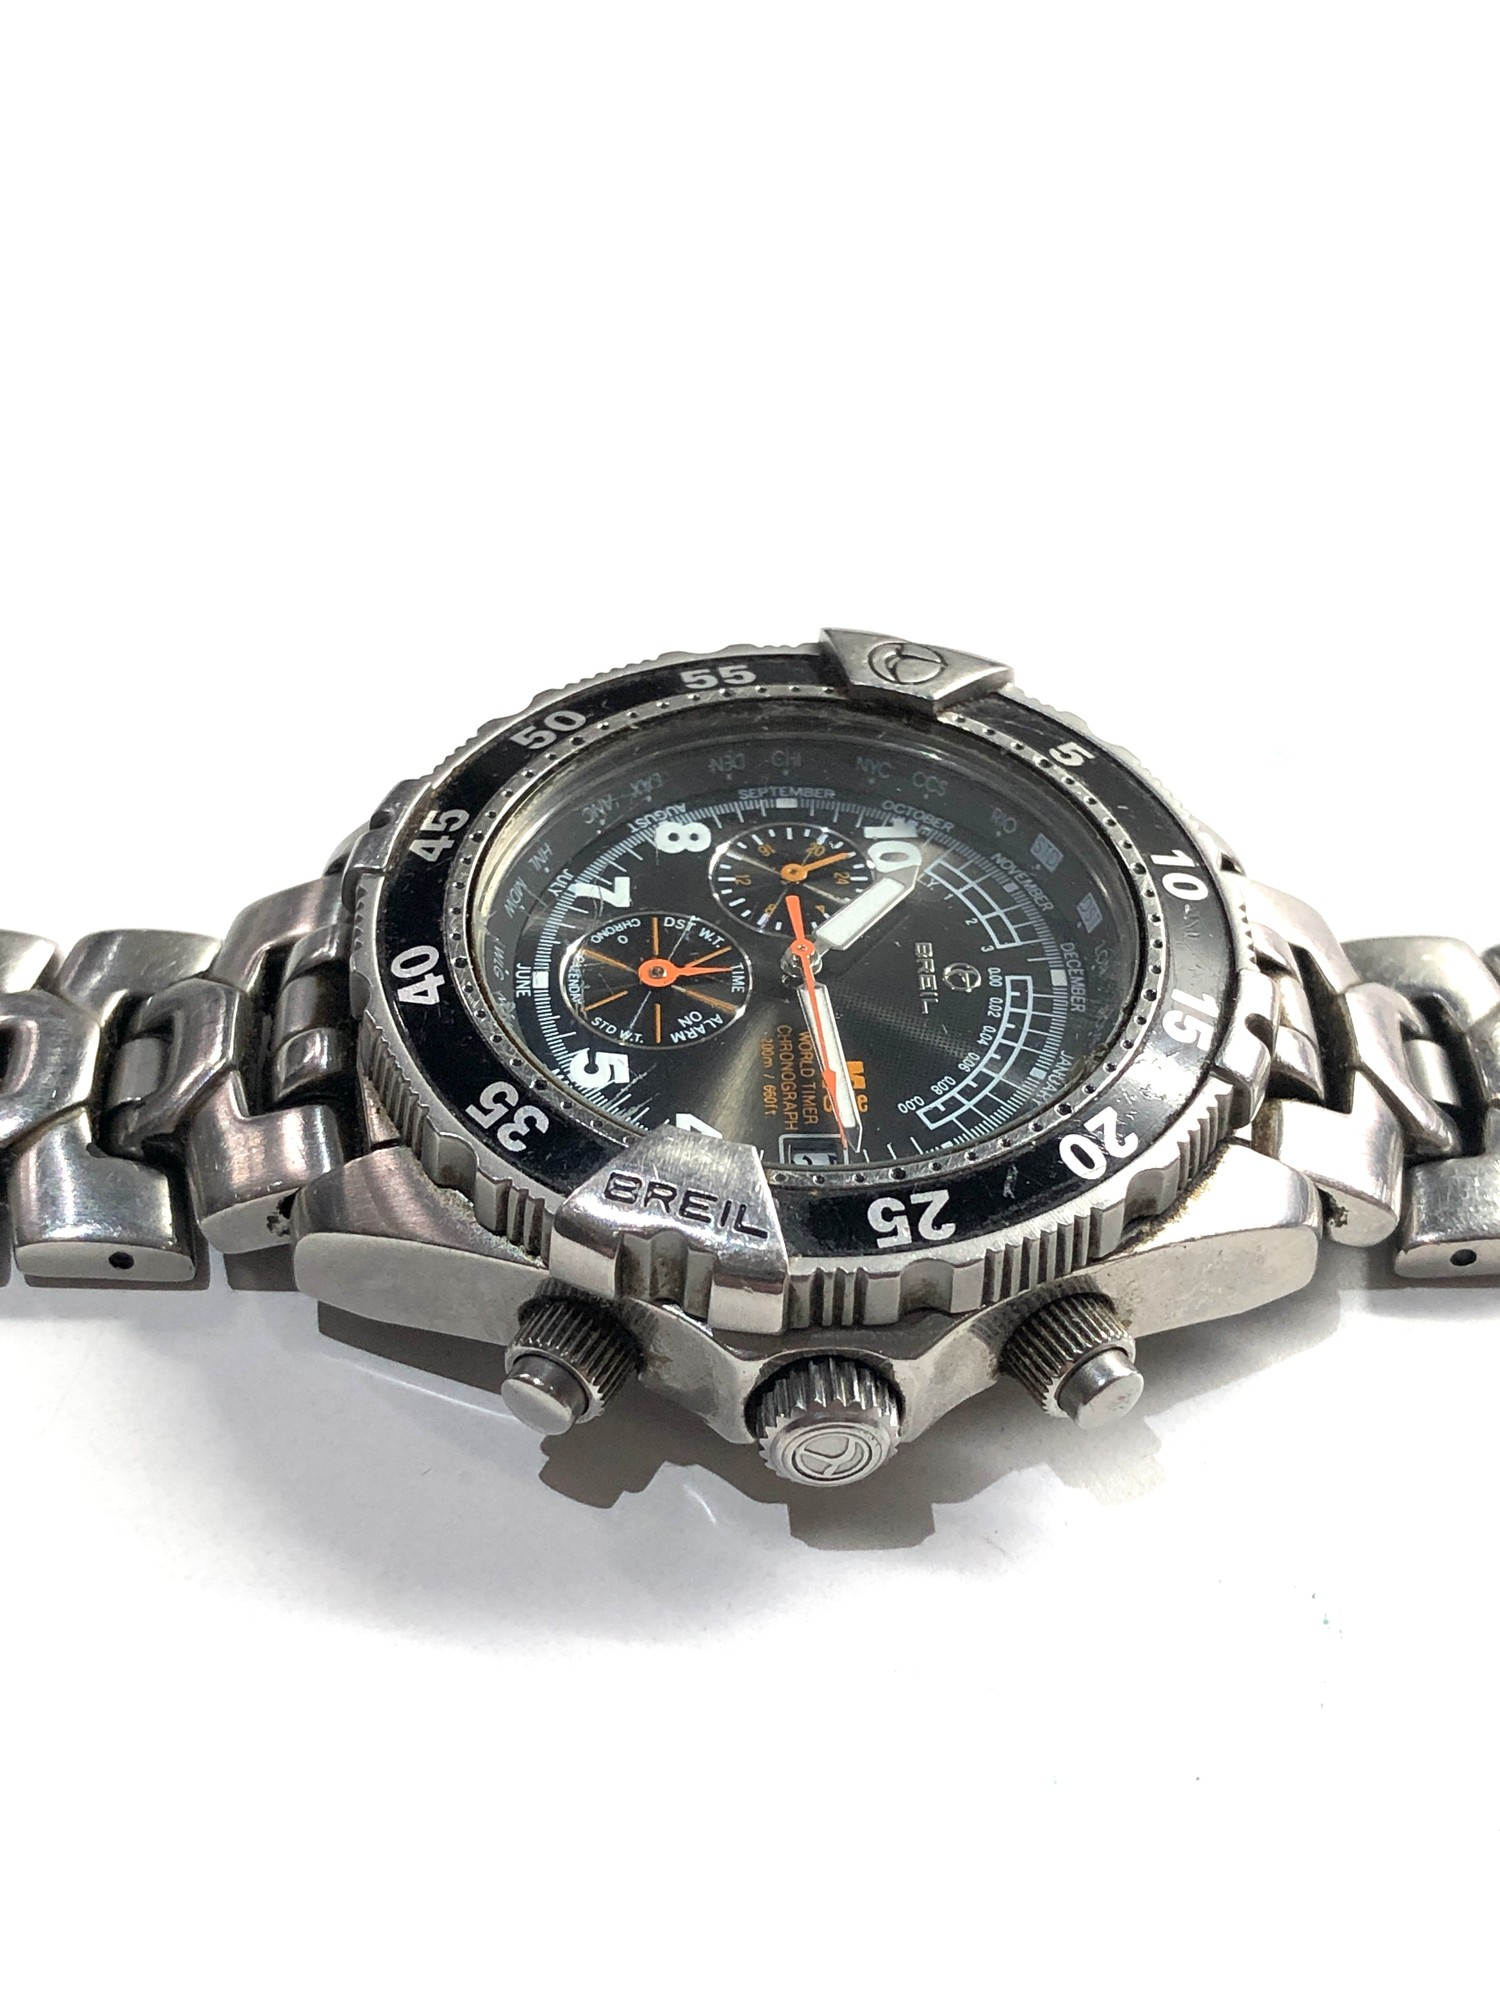 Gents Breil world timer chronograph wristwatch spares or repair - Image 2 of 5